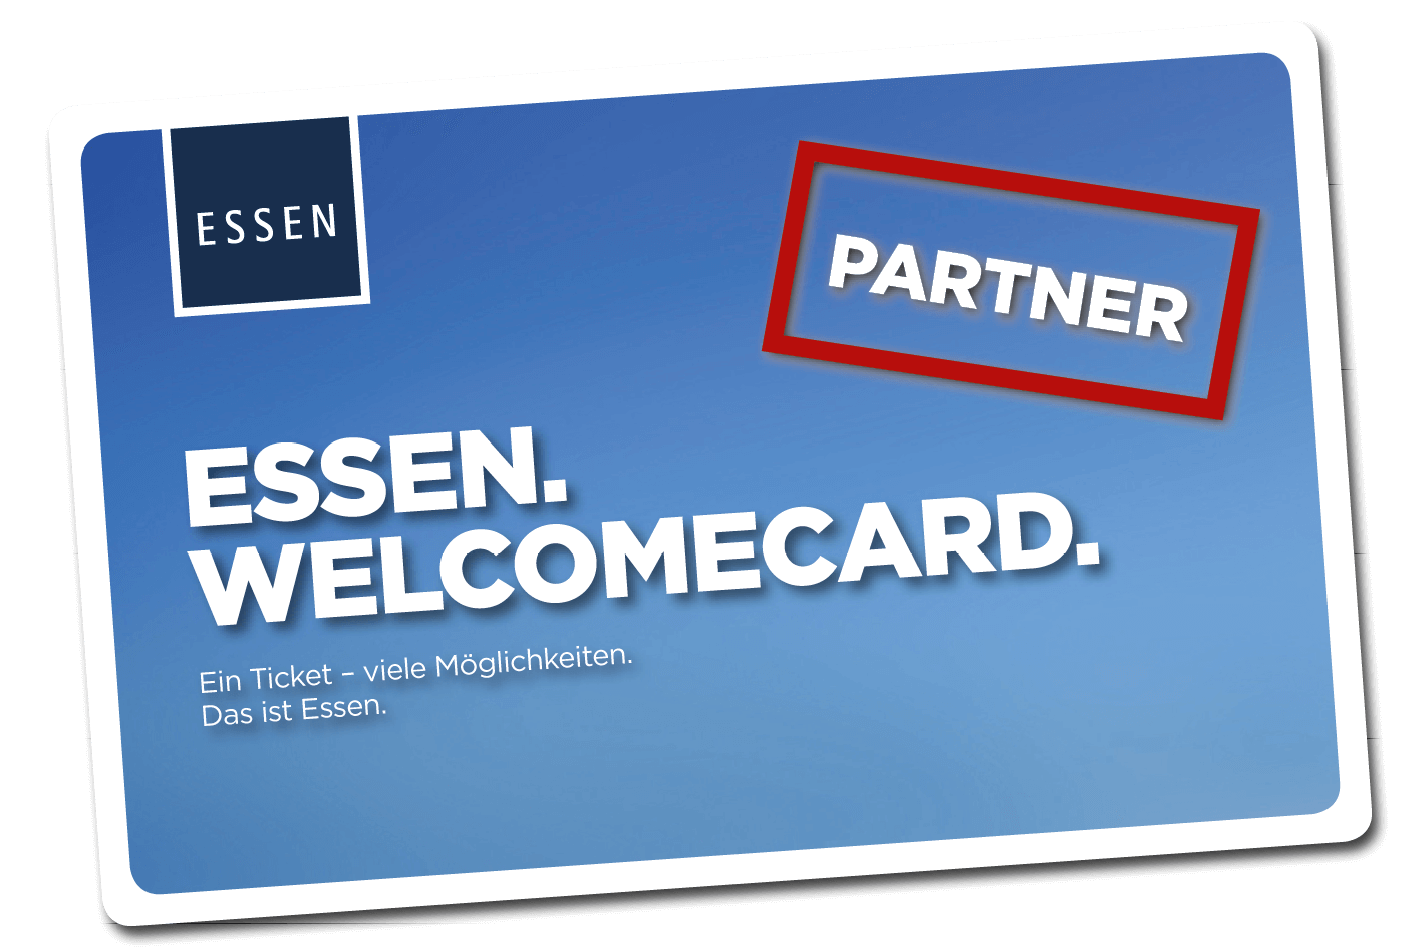 ESSEN.WelcomeCard. Partner